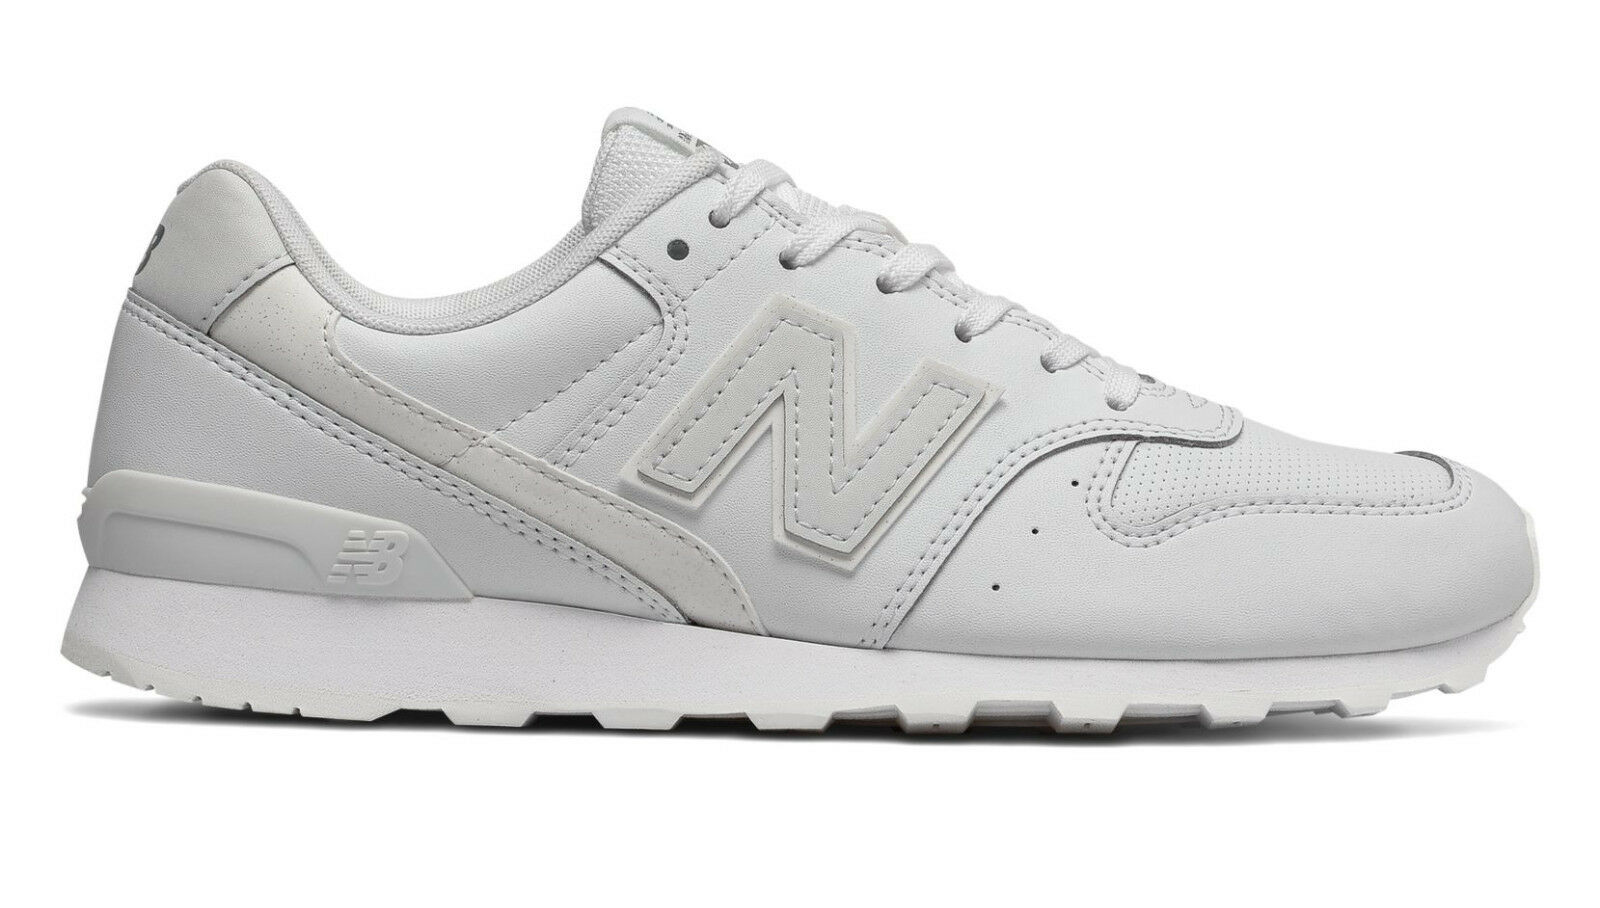 3e110c7266 NEW BALANCE Sneakers donna in pelle bianco WR996SRW Lifestyle Leather white  - mainstreetblytheville.org